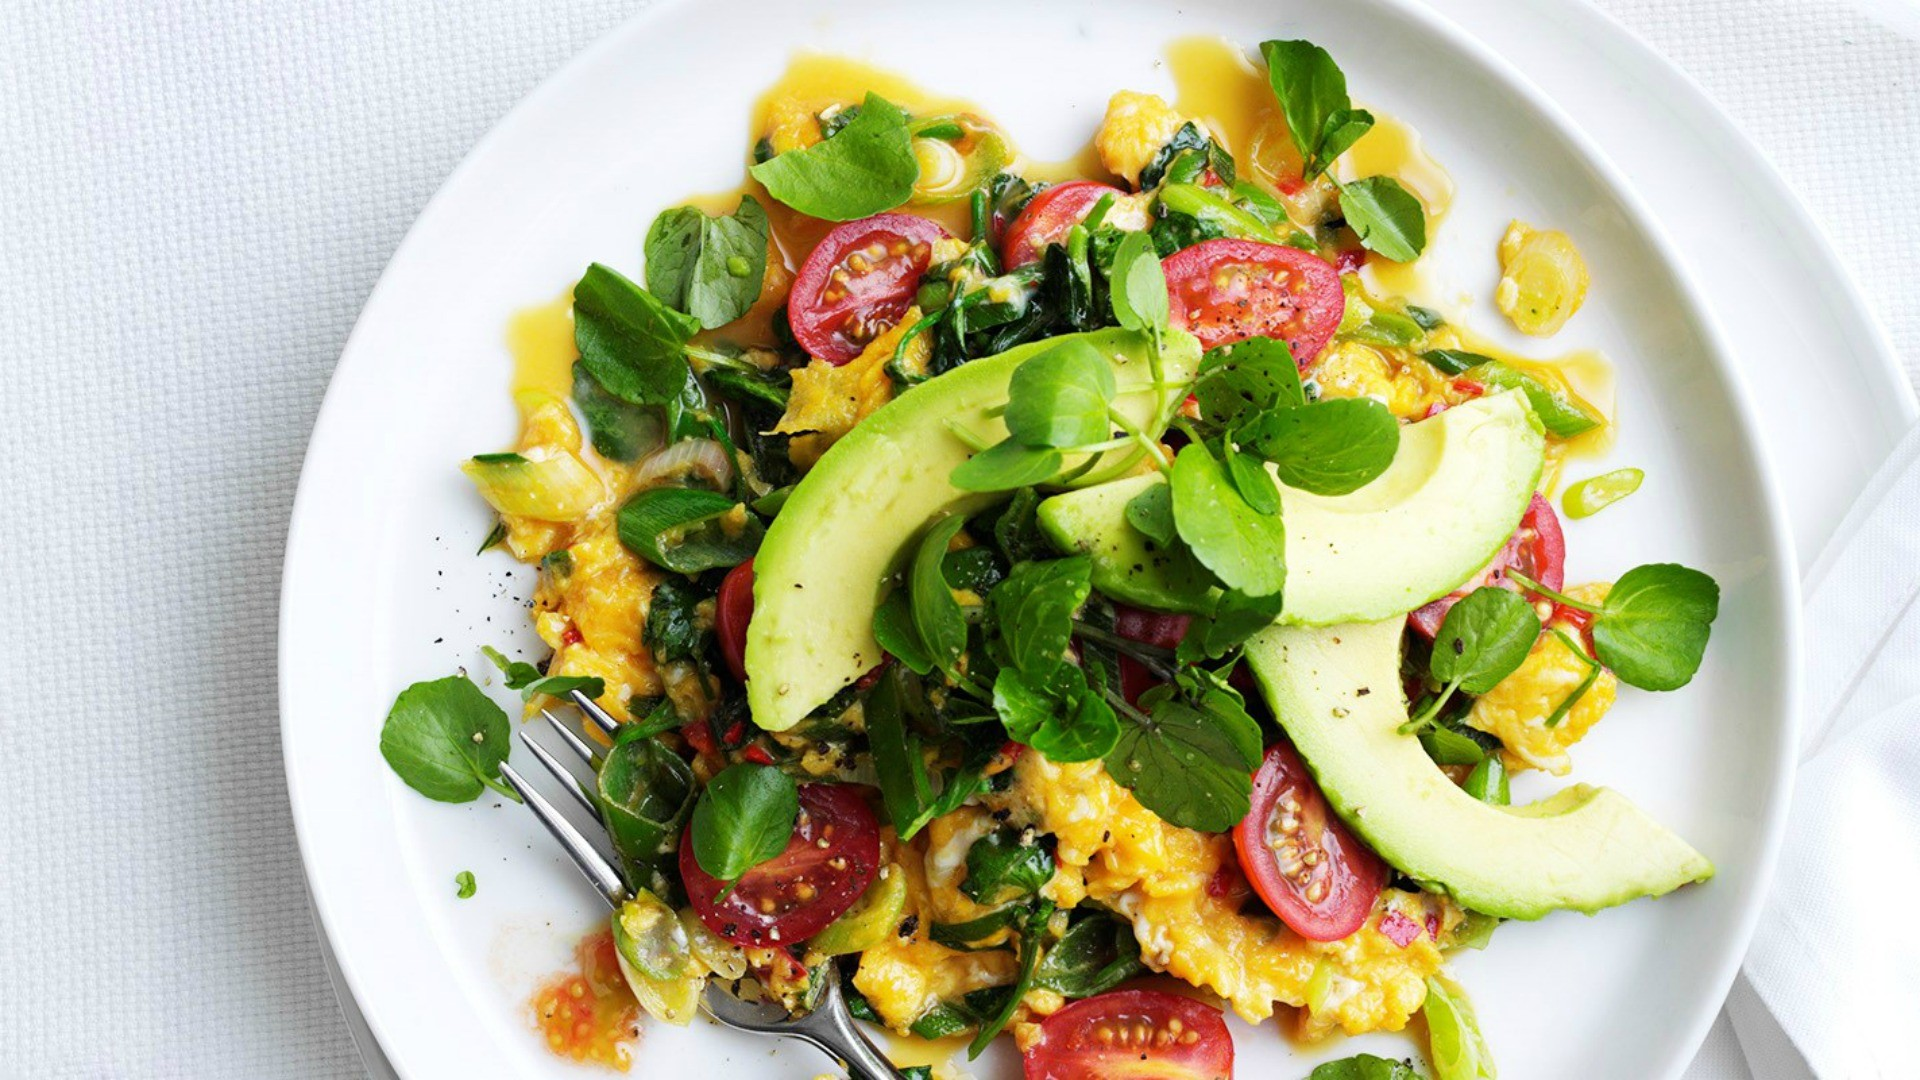 The spicy California scramble also makes a great weekend brunch